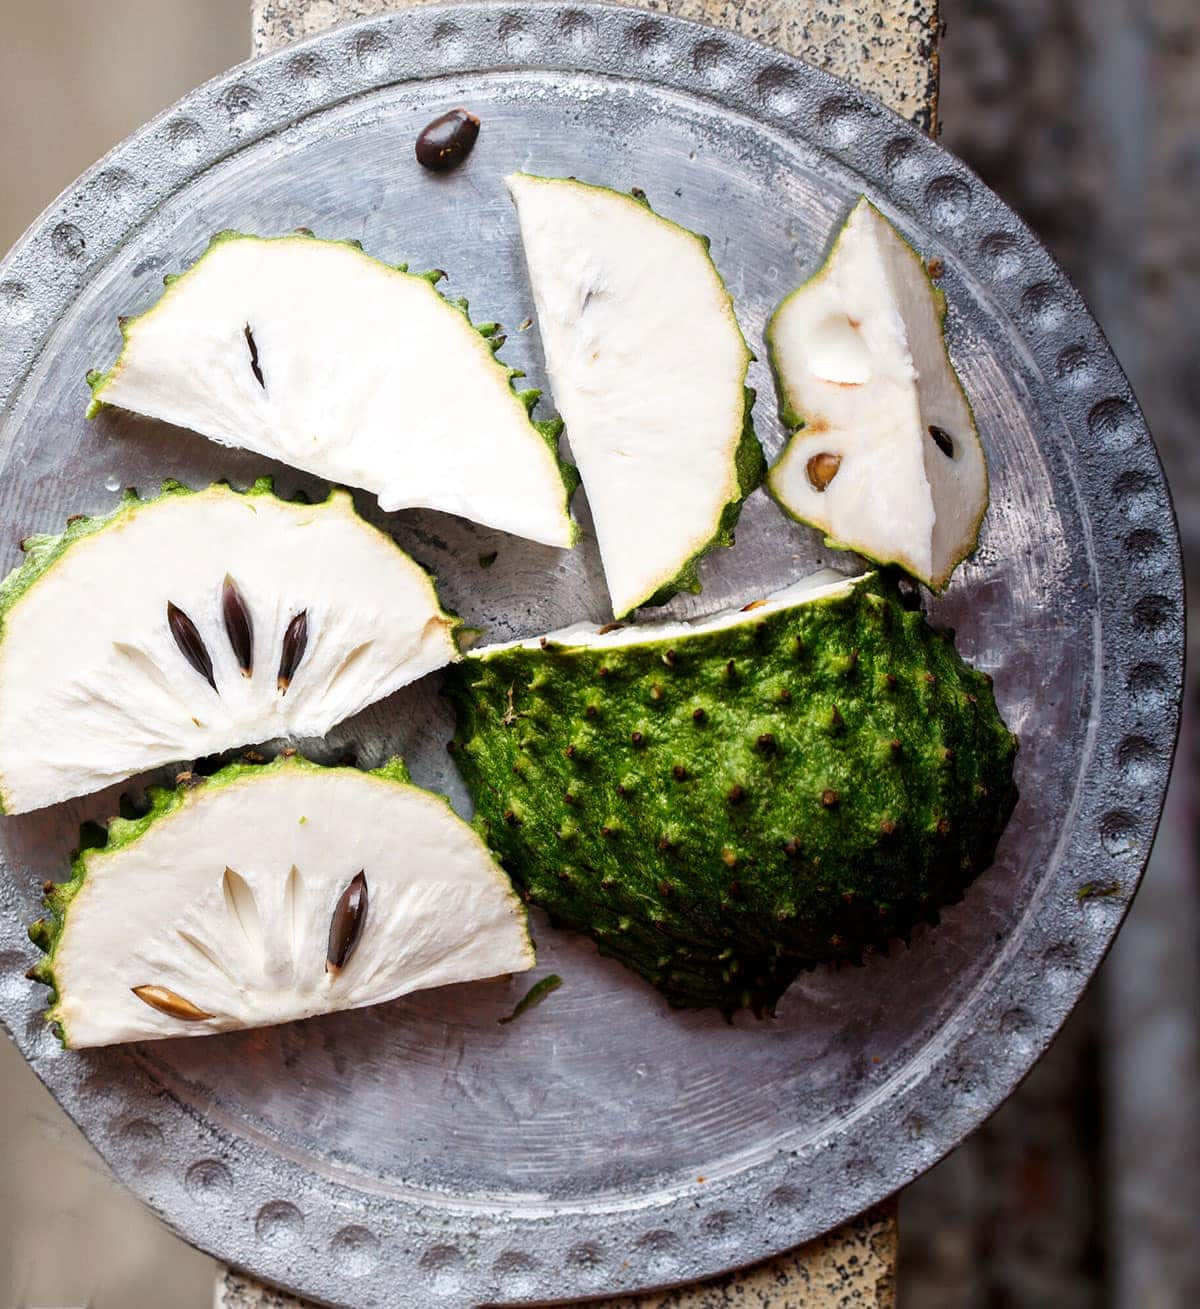 Soursop cut into slices showing white flesh on a silver platter